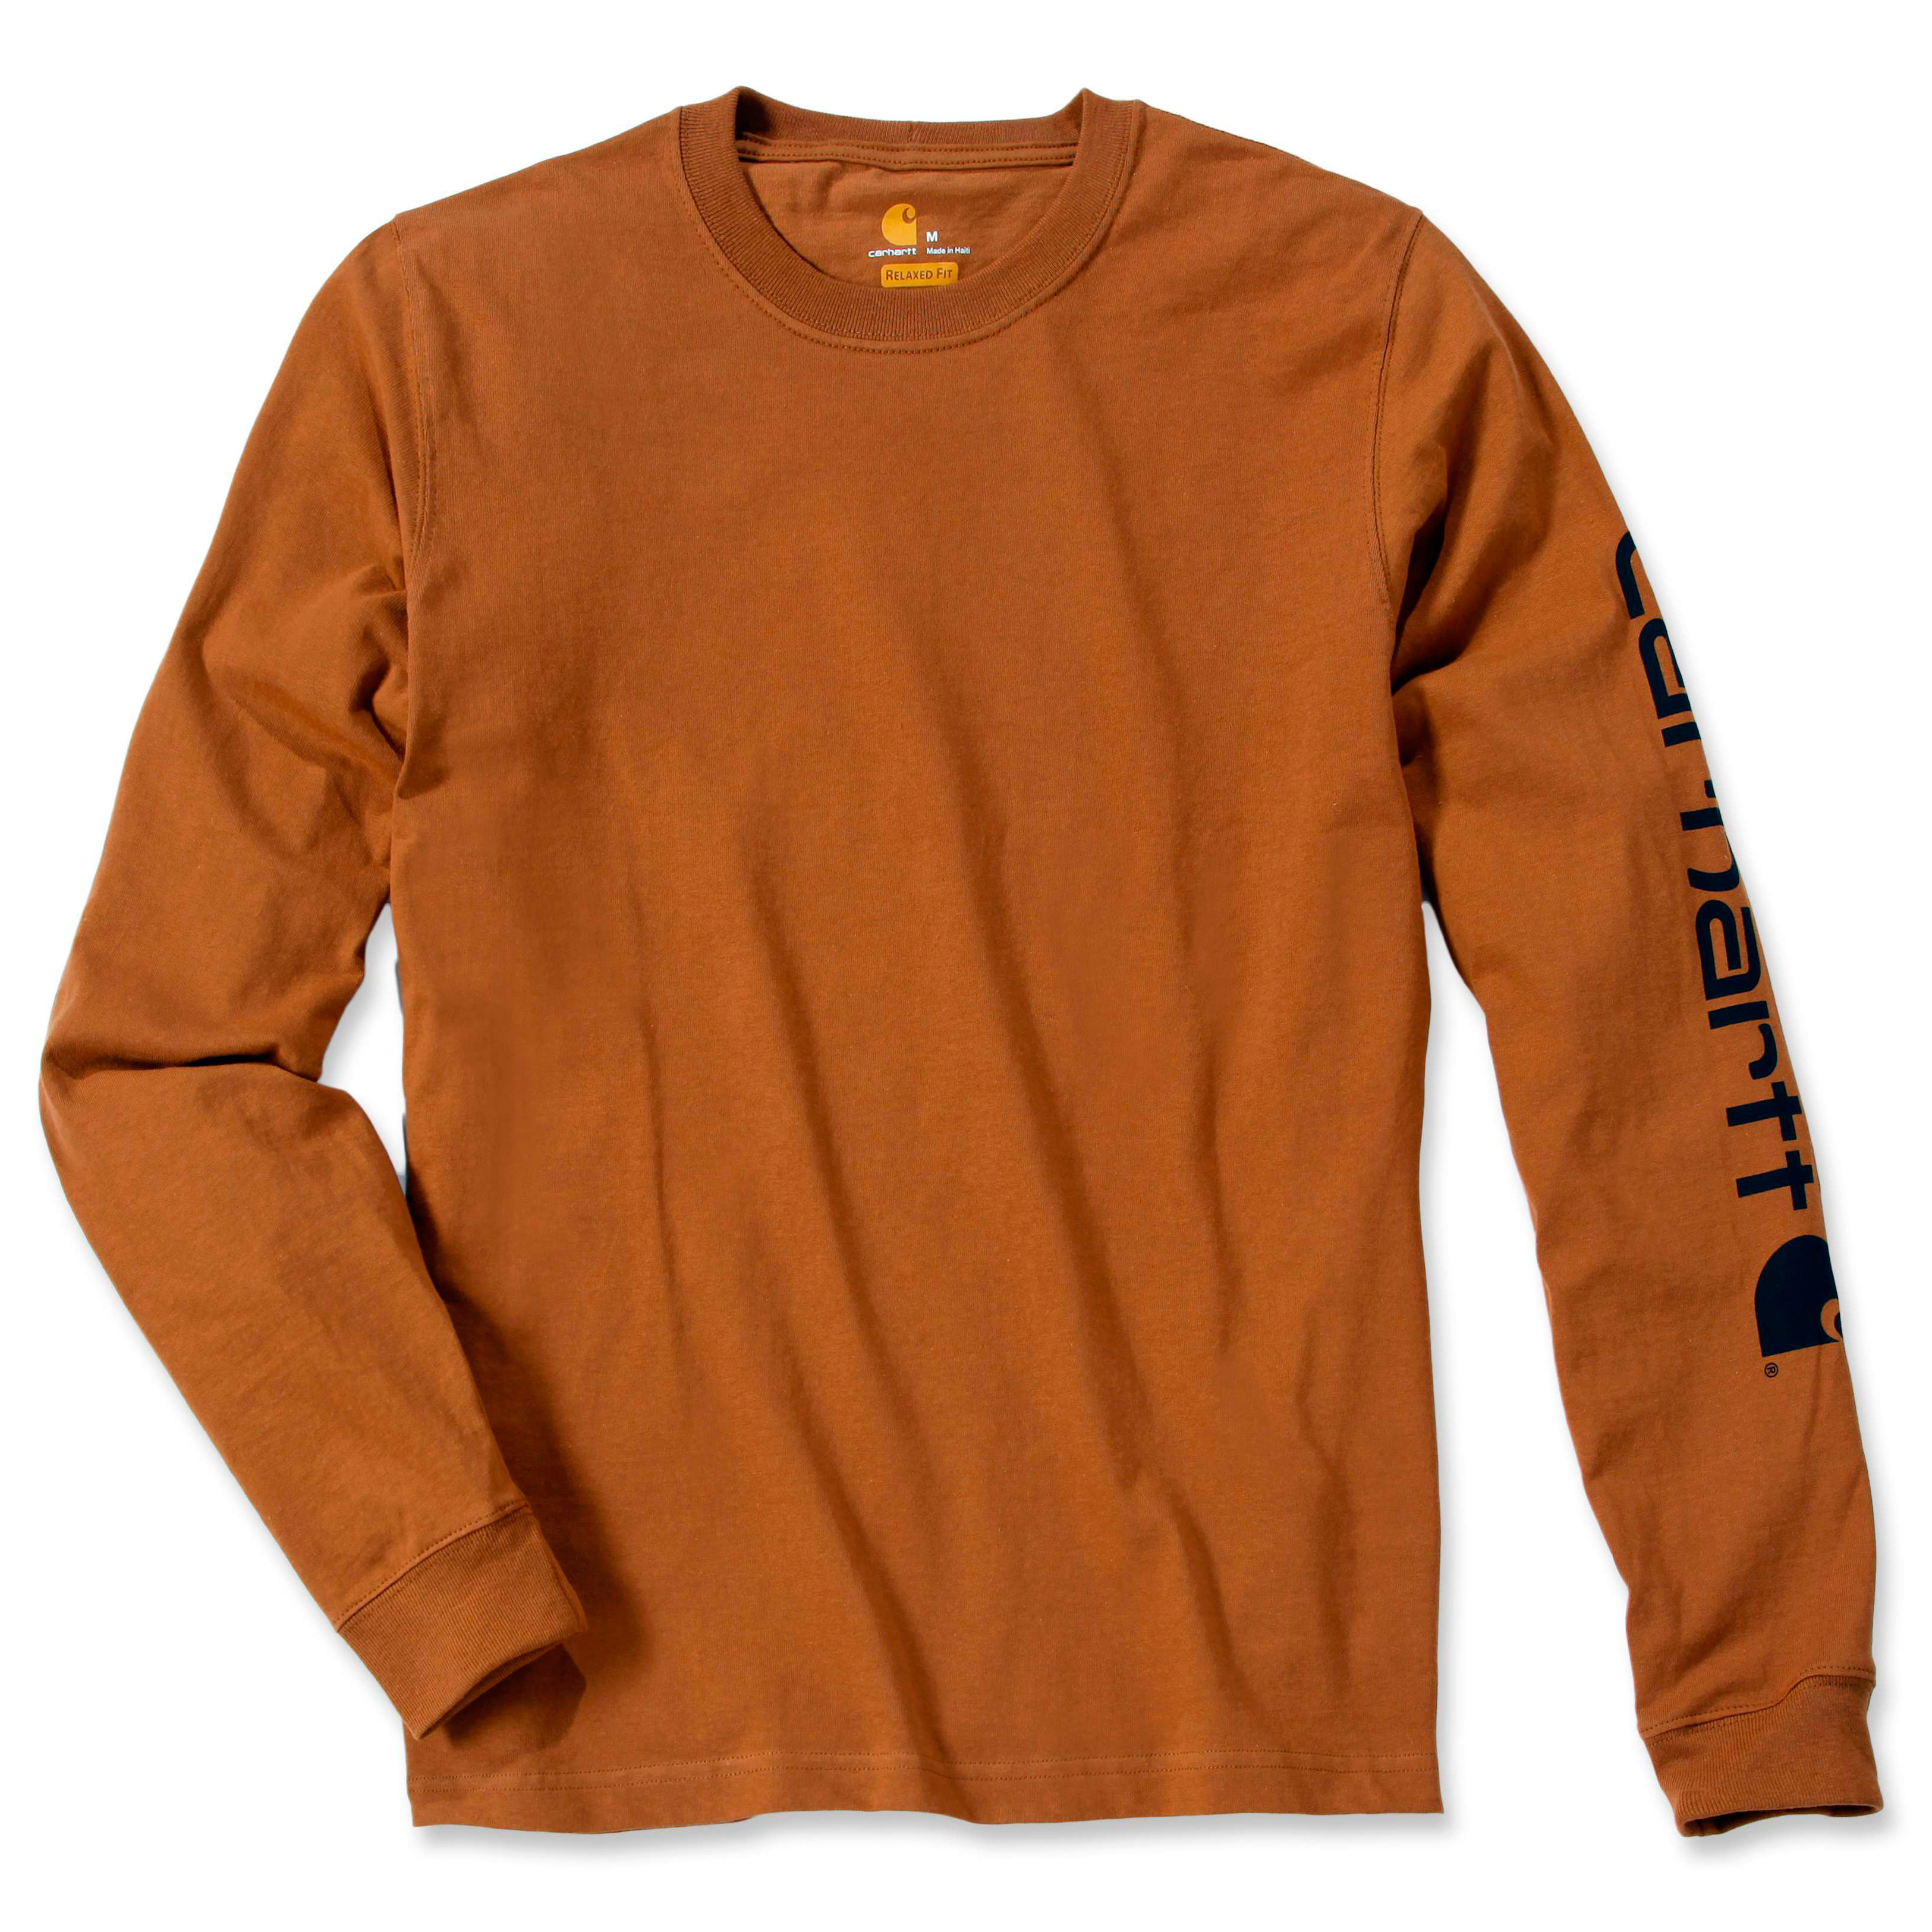 Футболка с длинным рукавом Carhartt Sleeve Logo T-Shirt L/S - EK231 (Carhartt Brown, XL)